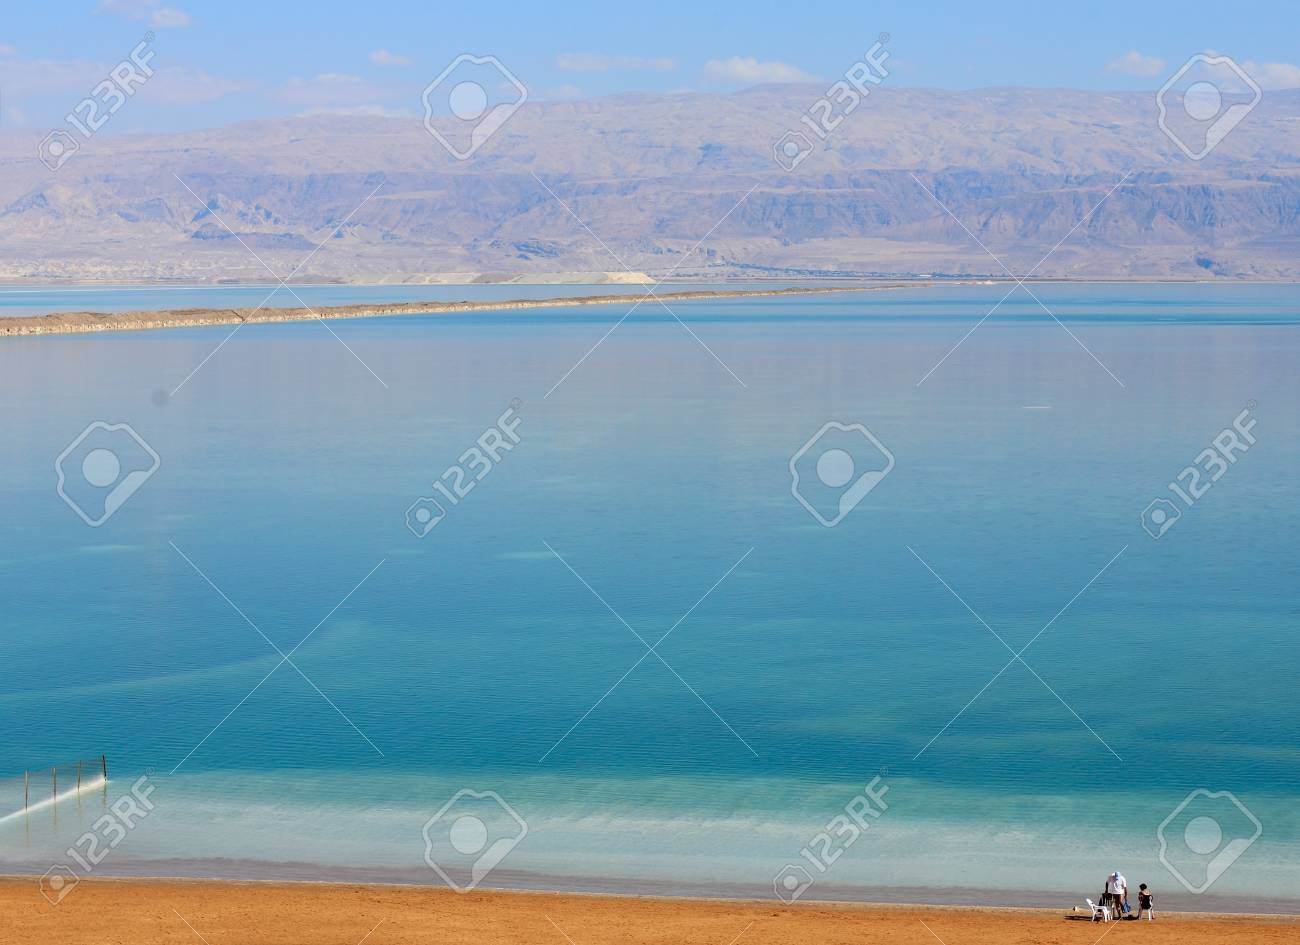 Dead Sea. Each year, the Dead Sea drying up. Stock Photo - 12441482